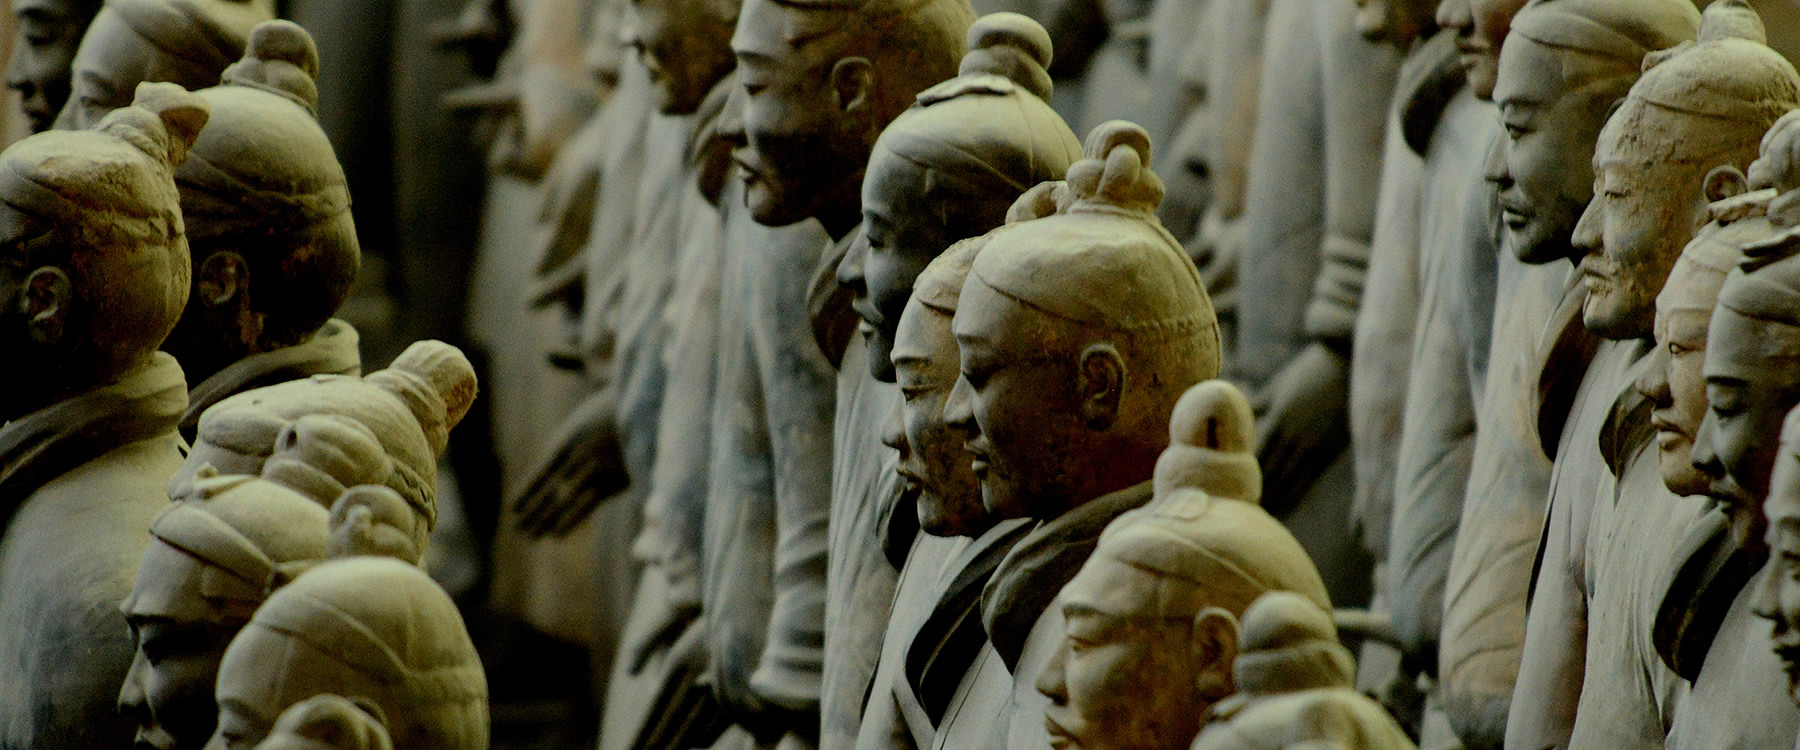 Ancient Chinese terracotta warrier sculptures lined up